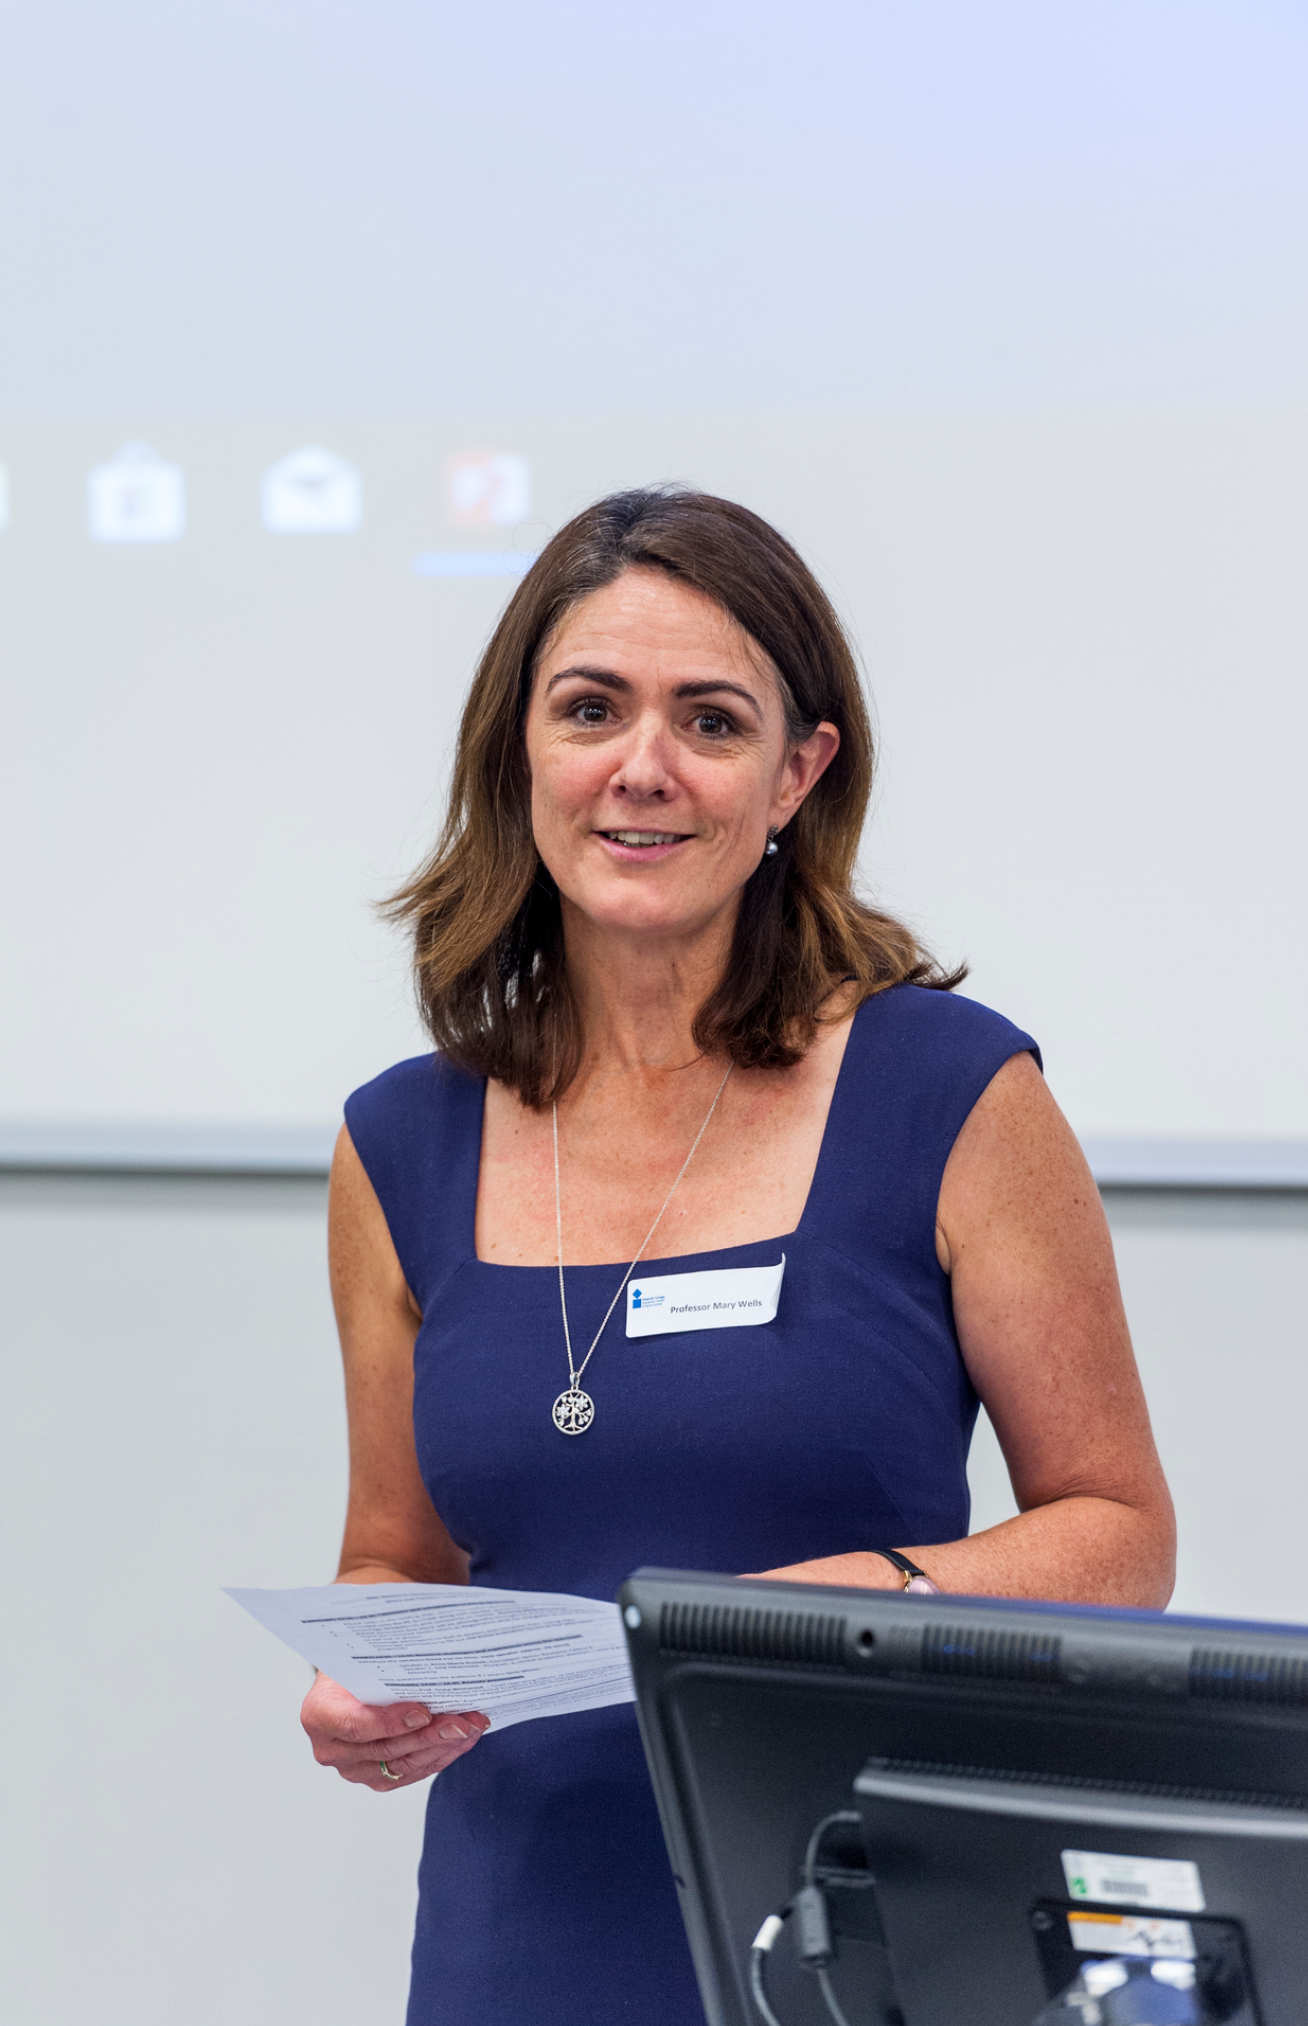 Mary Wells, Professor of Practice (Cancer Nursing) and Lead Nurse for Research at Imperial College Healthcare NHS Trust